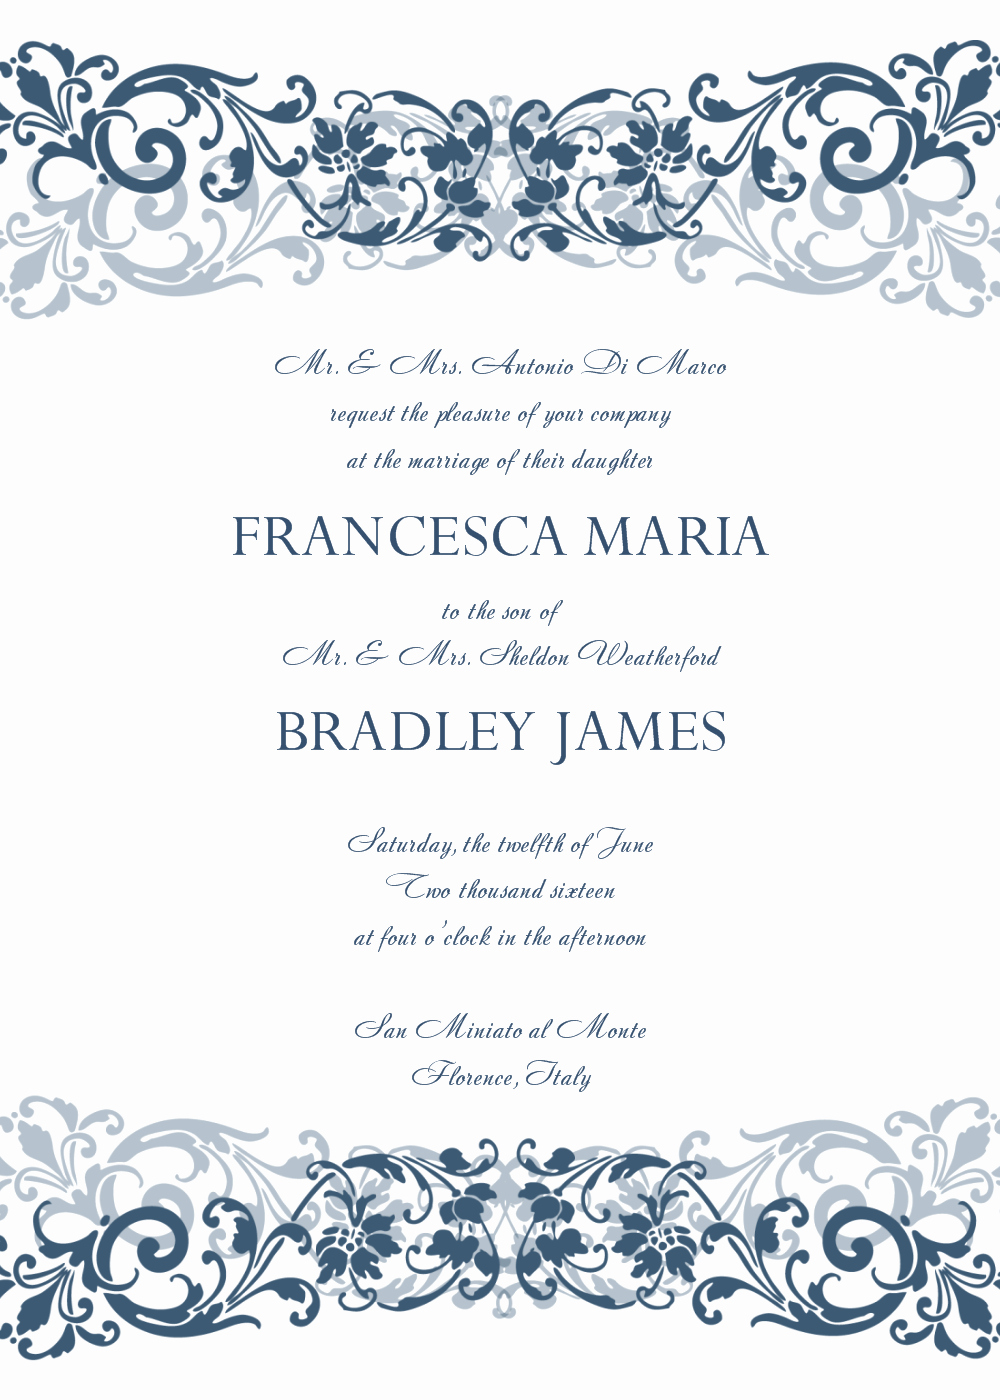 Free Wedding Invitation Templates New 30 Free Wedding Invitations Templates